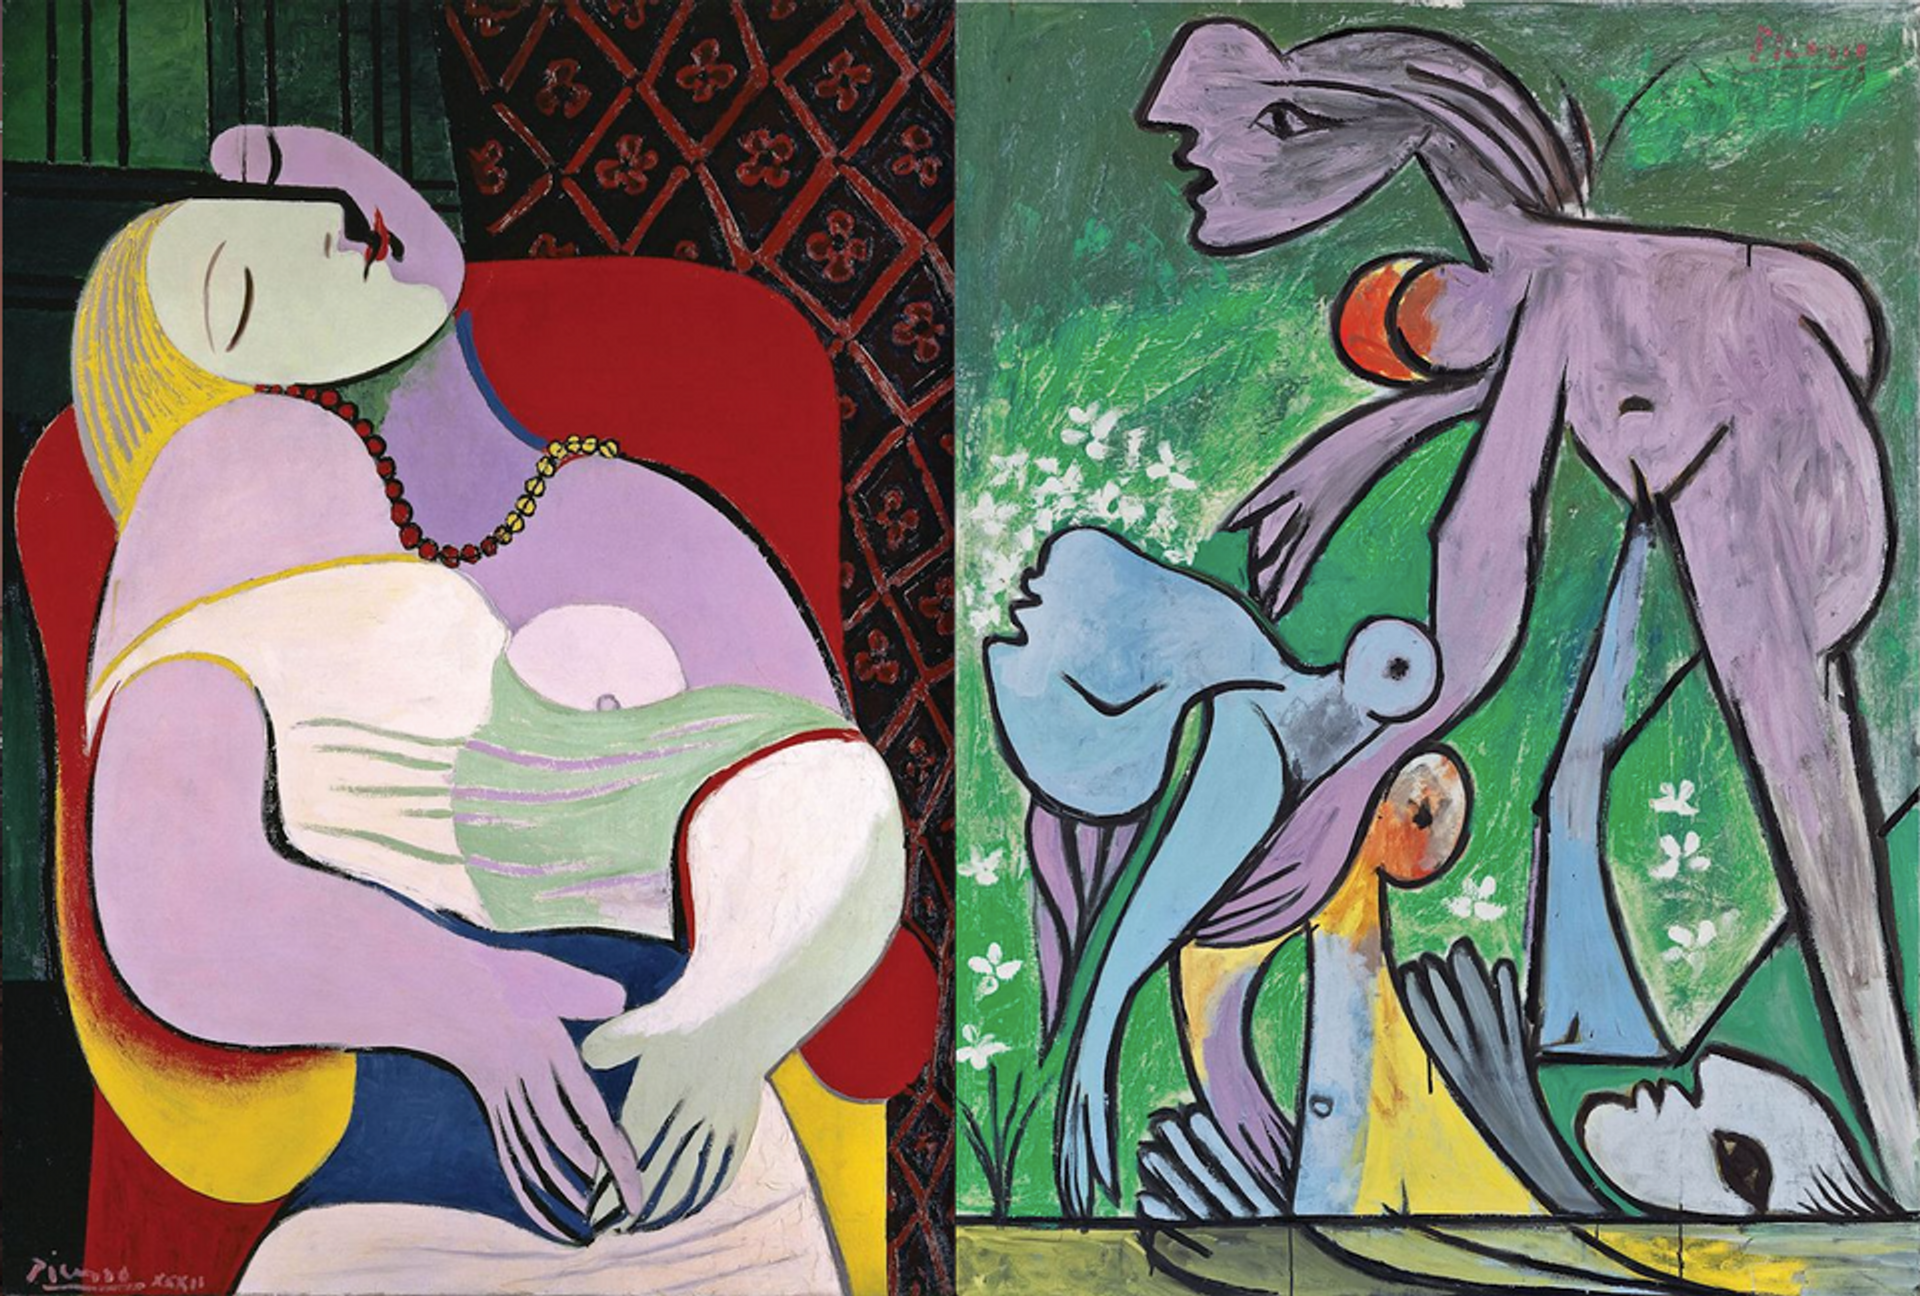 Pablo Picasso's Le Rêve (The Dream) and The Rescue (Le sauvetage) (both 1932) Private Collection and Fondation Beyeler, Riehen/Basel. Both Succession Picasso/DACS London, 2017